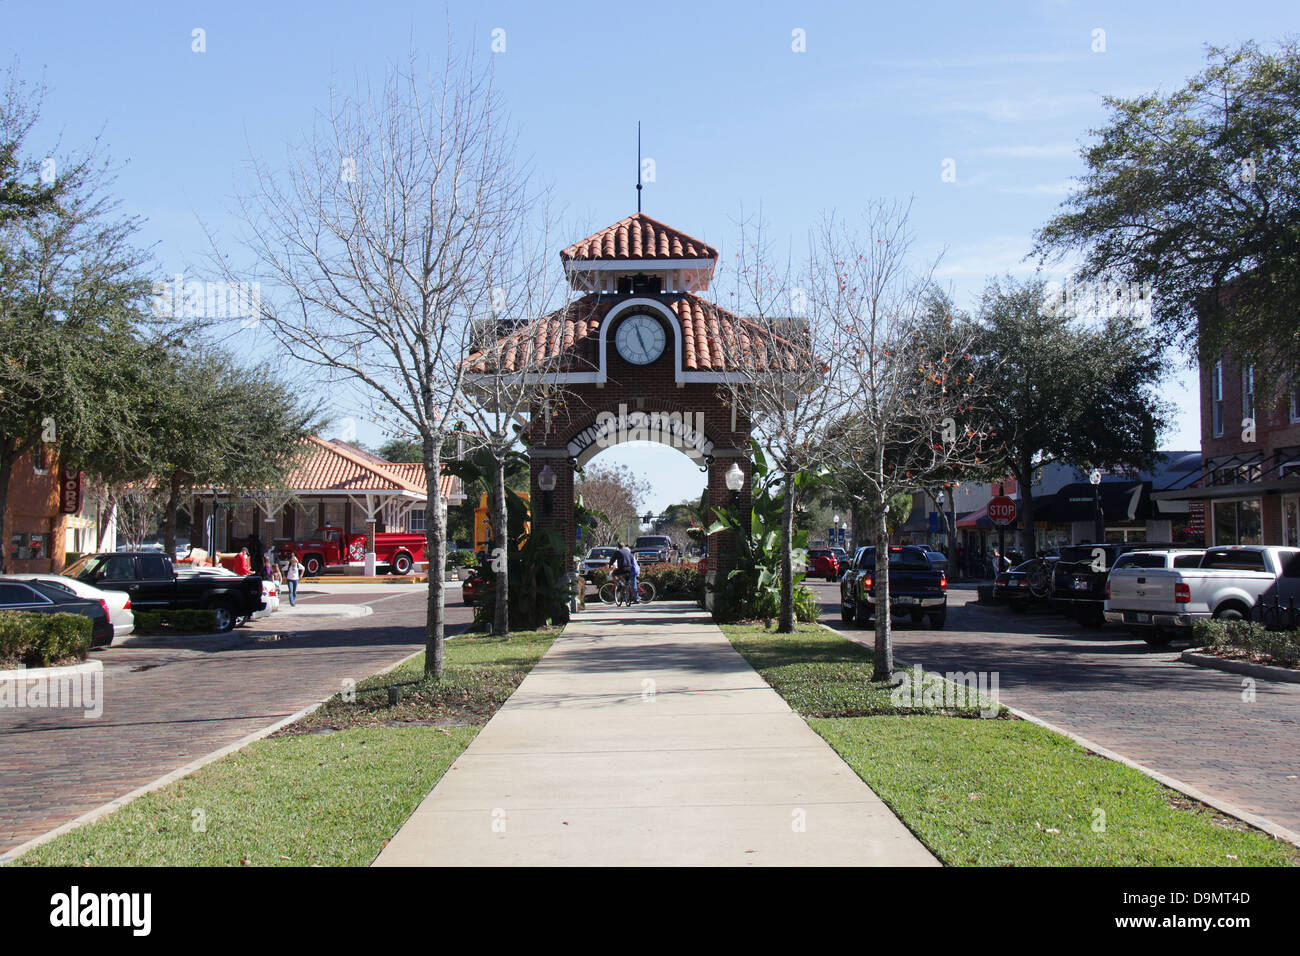 downtown winter park florida united stock photos u0026 downtown winter